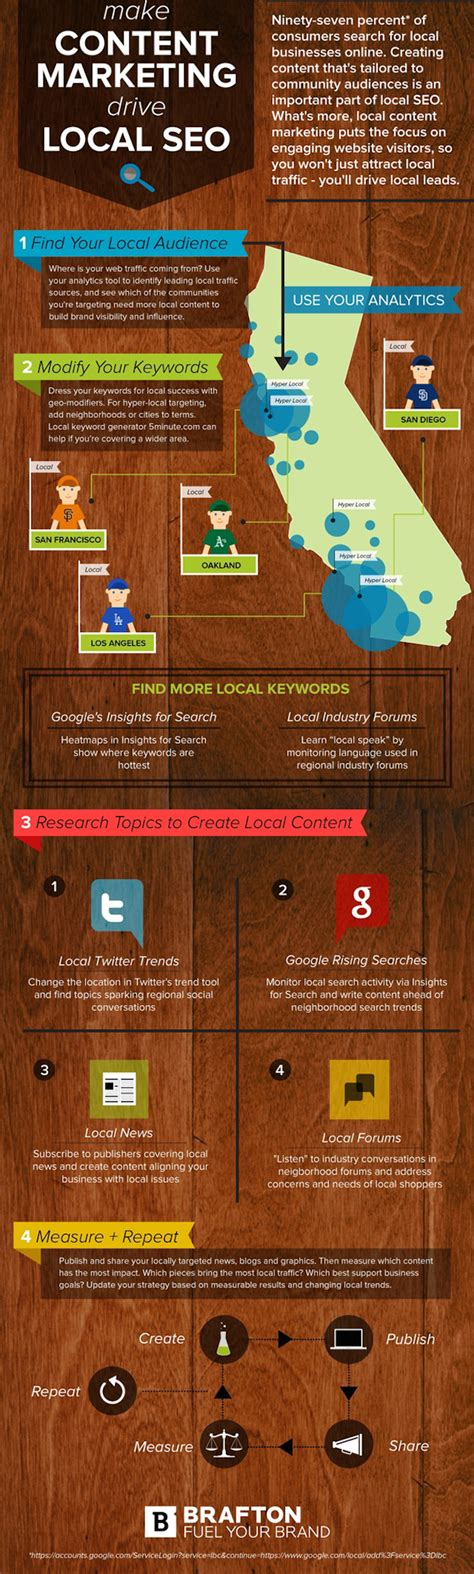 local seo marketing 4 on site optimization tips for local seo to help you rank